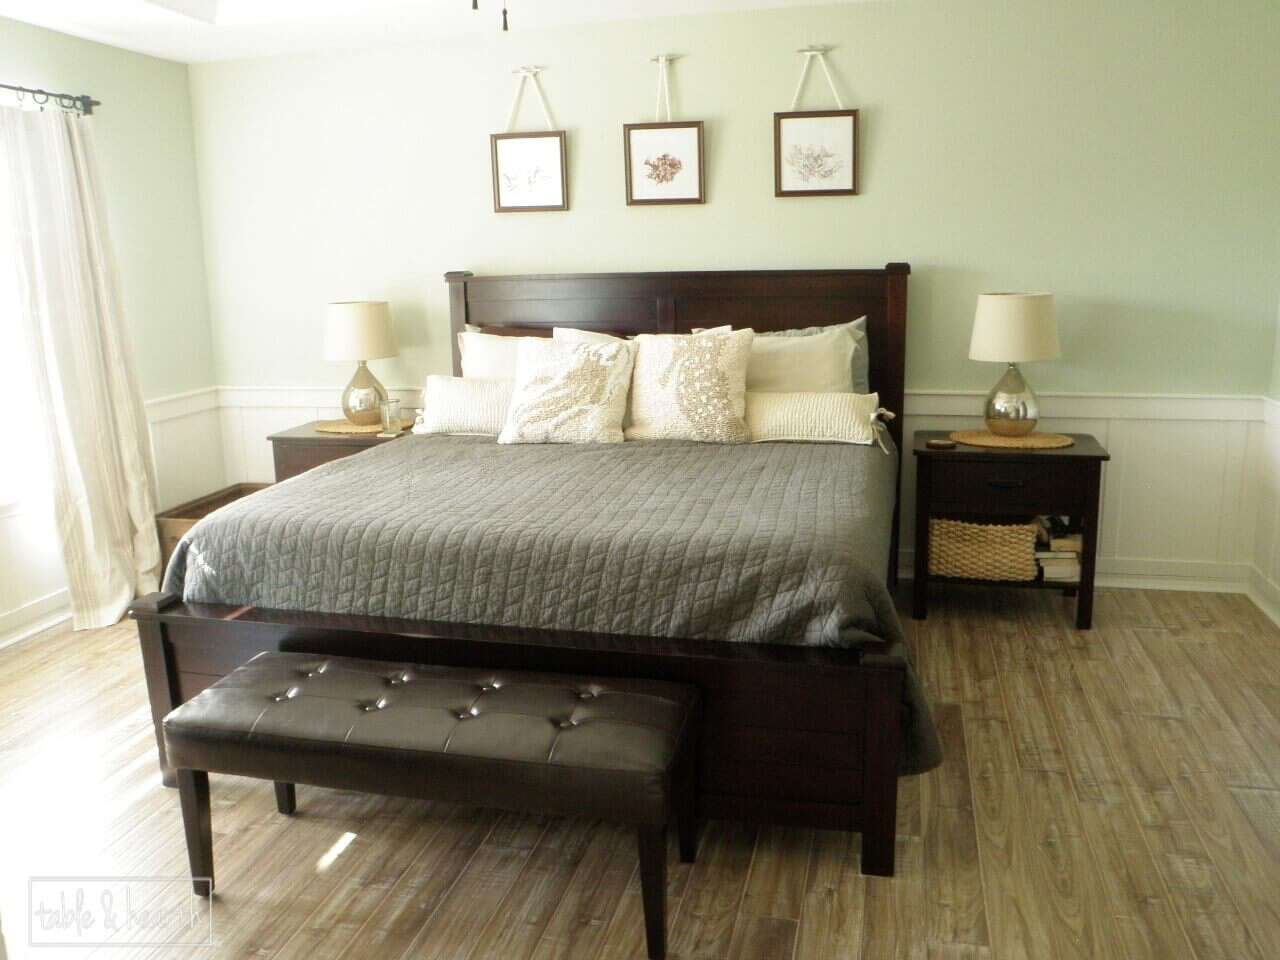 Master bedroom redecorating advice table and hearth for Redecorating bedroom